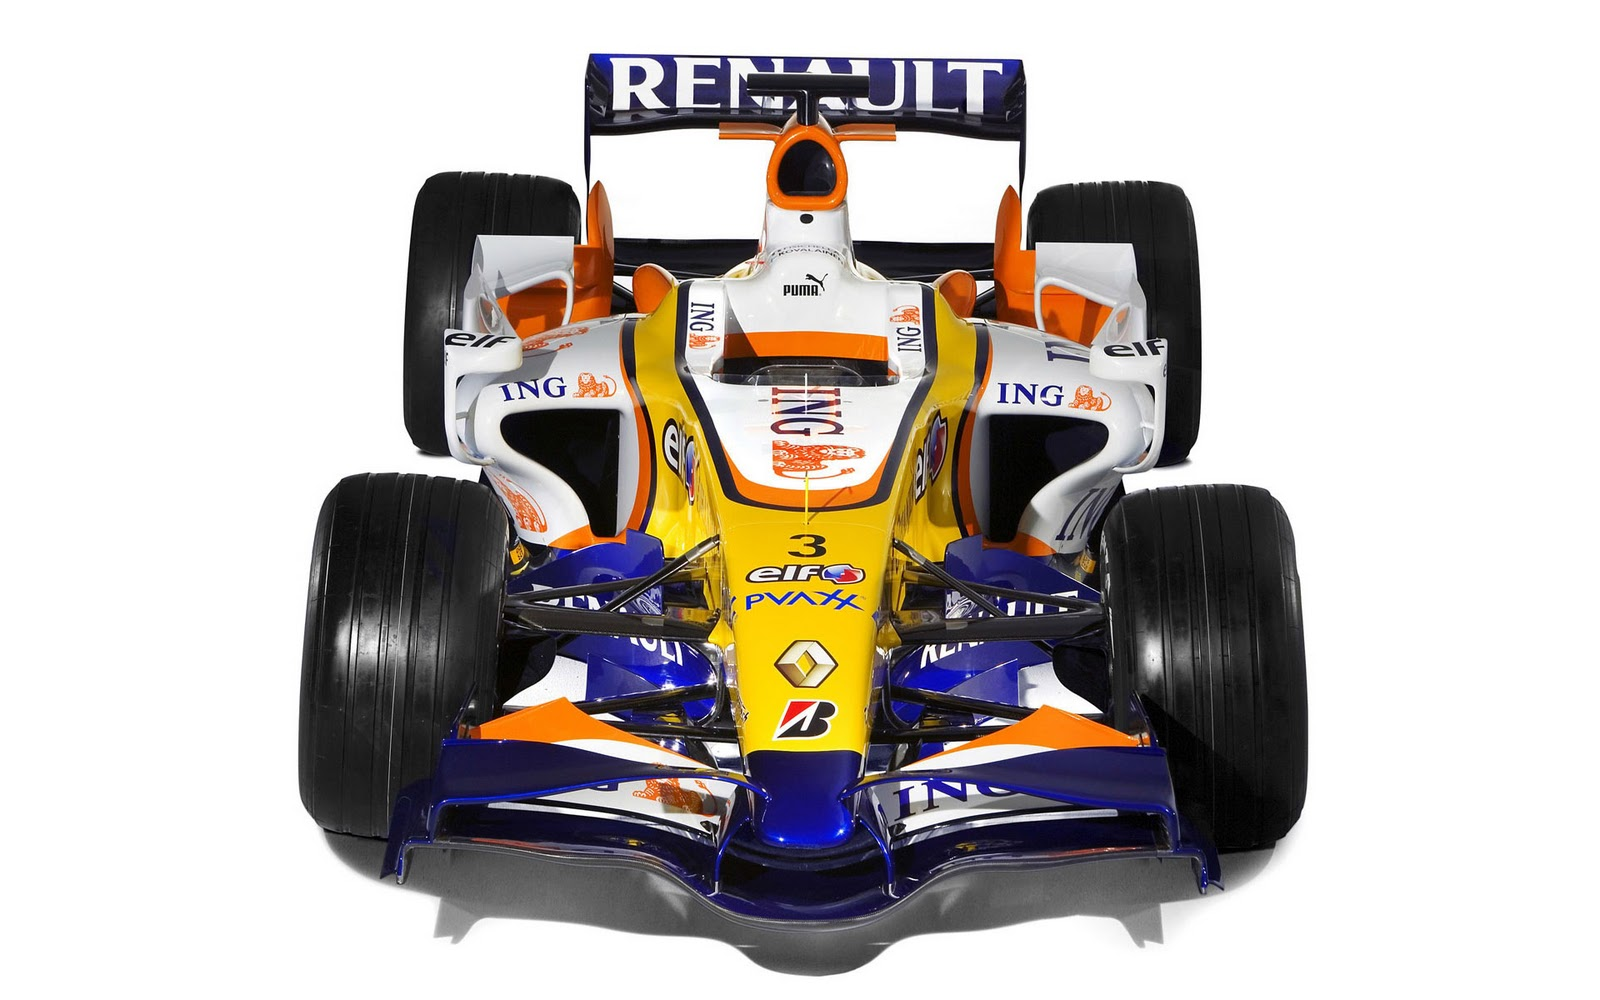 http://2.bp.blogspot.com/_RAlP3BmEW1Q/TQYP3bcMyhI/AAAAAAAACZ0/Mg3fKUCA0QU/s1600/The-best-top-desktop-formula-1-wallpapers-1.jpg